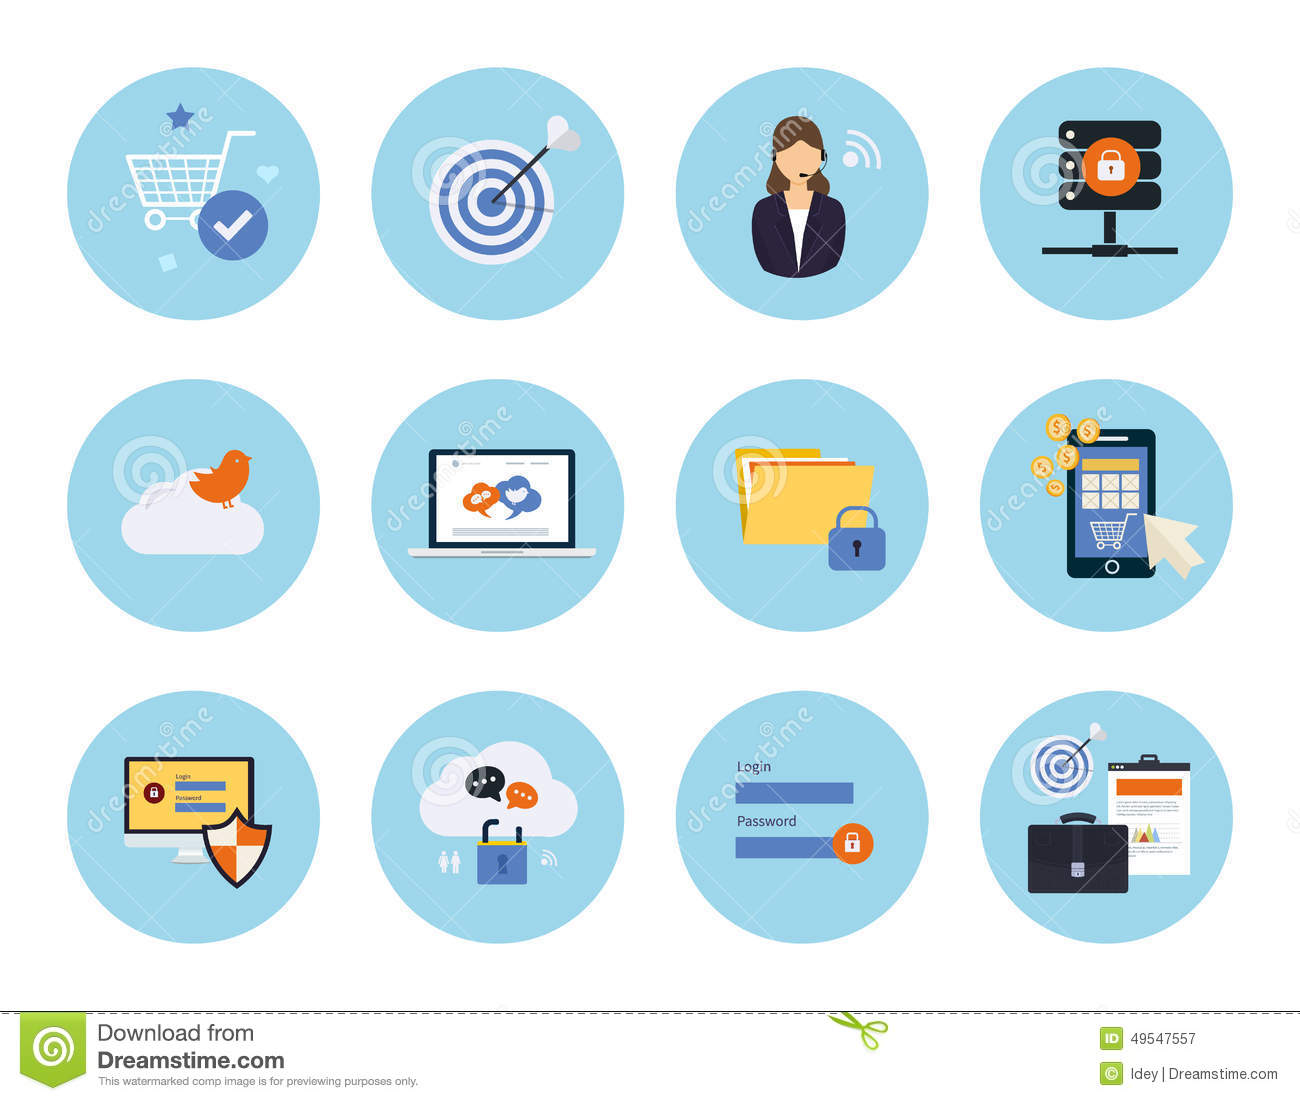 social and mobile marketing Inbound marketing fundamentals inbound is a great addition to traditional marketing techniques traditional marketing plus inbound marketing will help supercharge your sales without necessarily adding a lot of overhead.